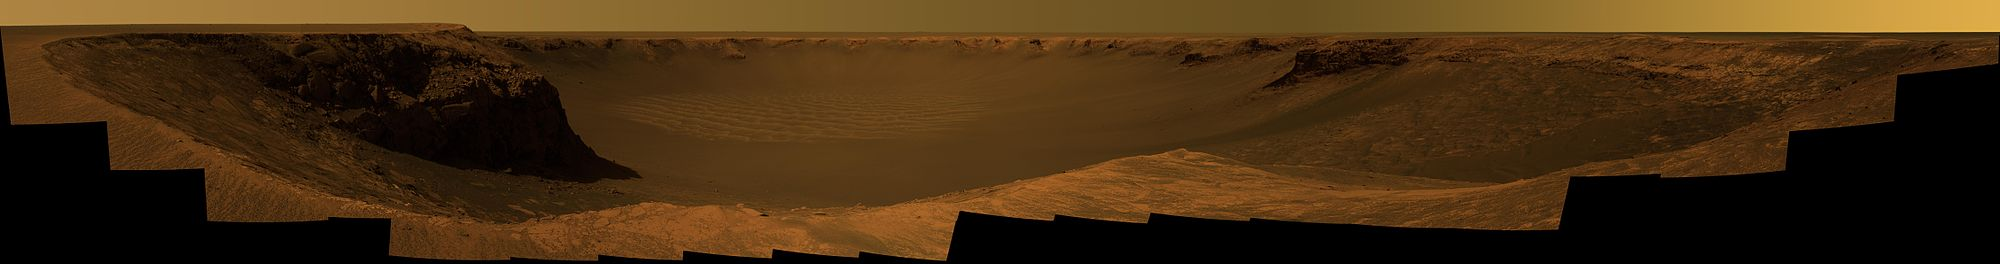 NASA-JPL-Caltech-Cornell - Panorama from Cape Verde.jpg